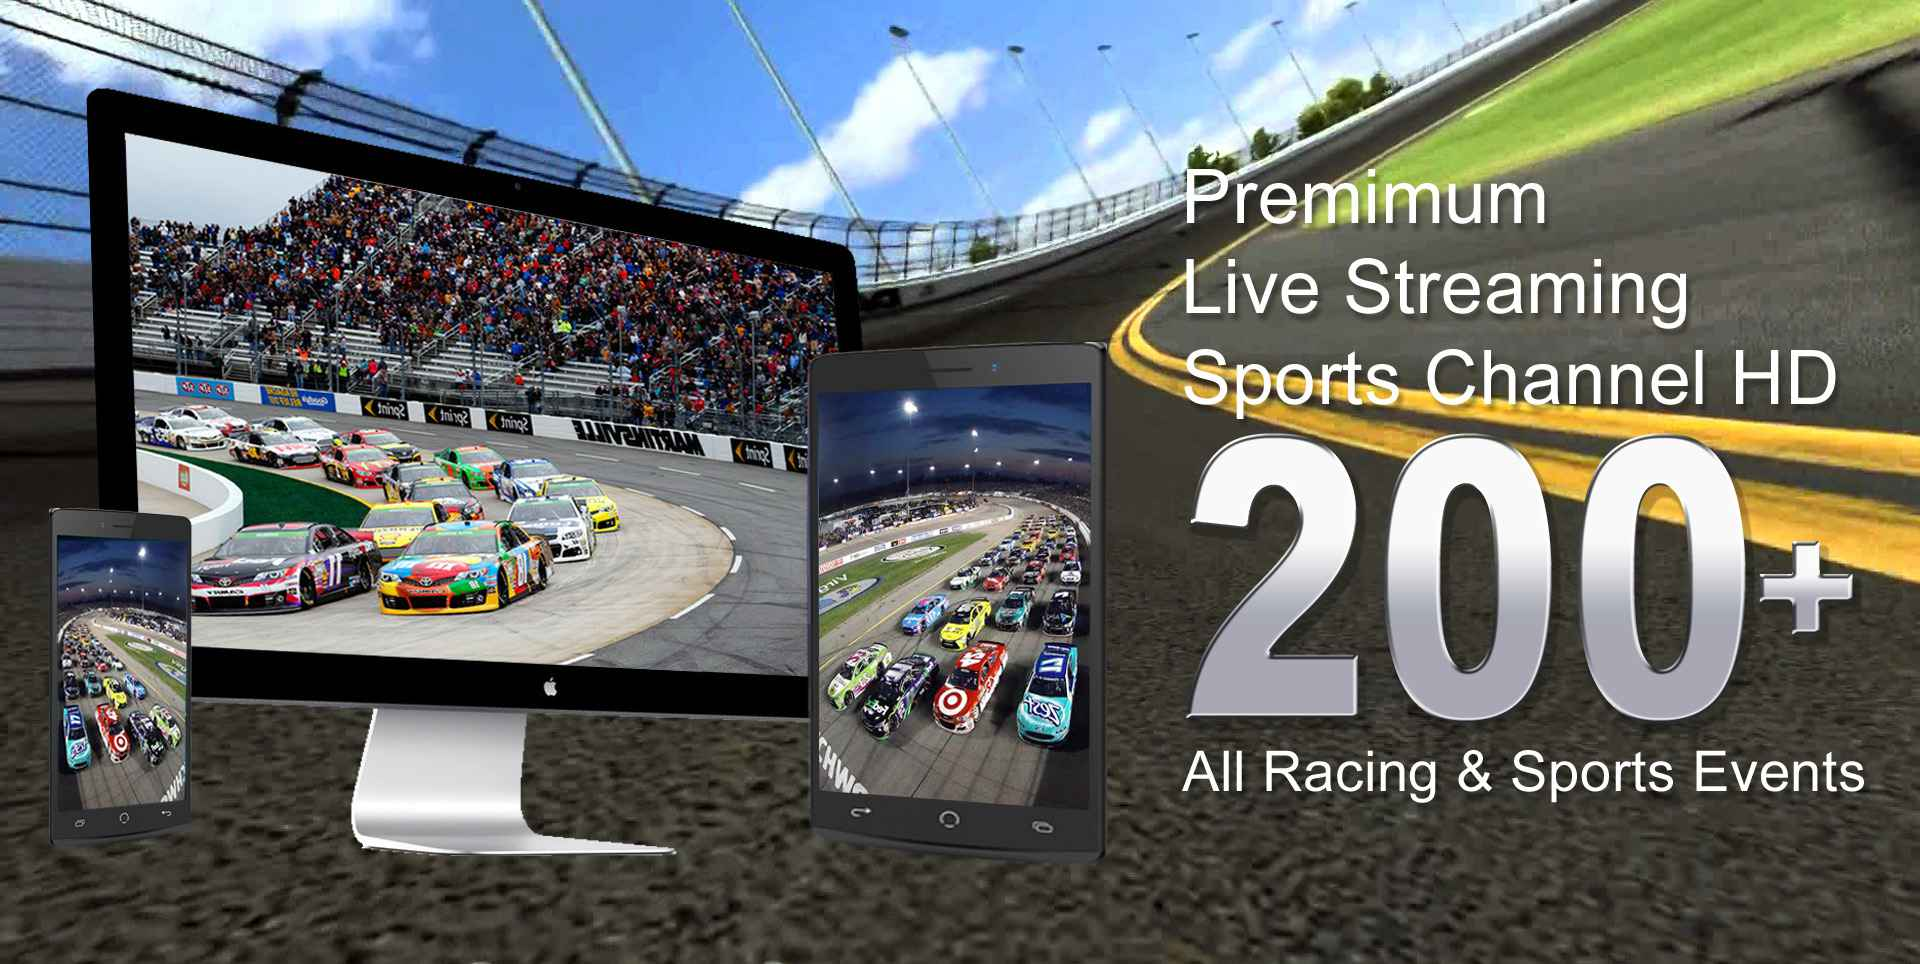 Citizen Soldier 400 NASCAR Race Live